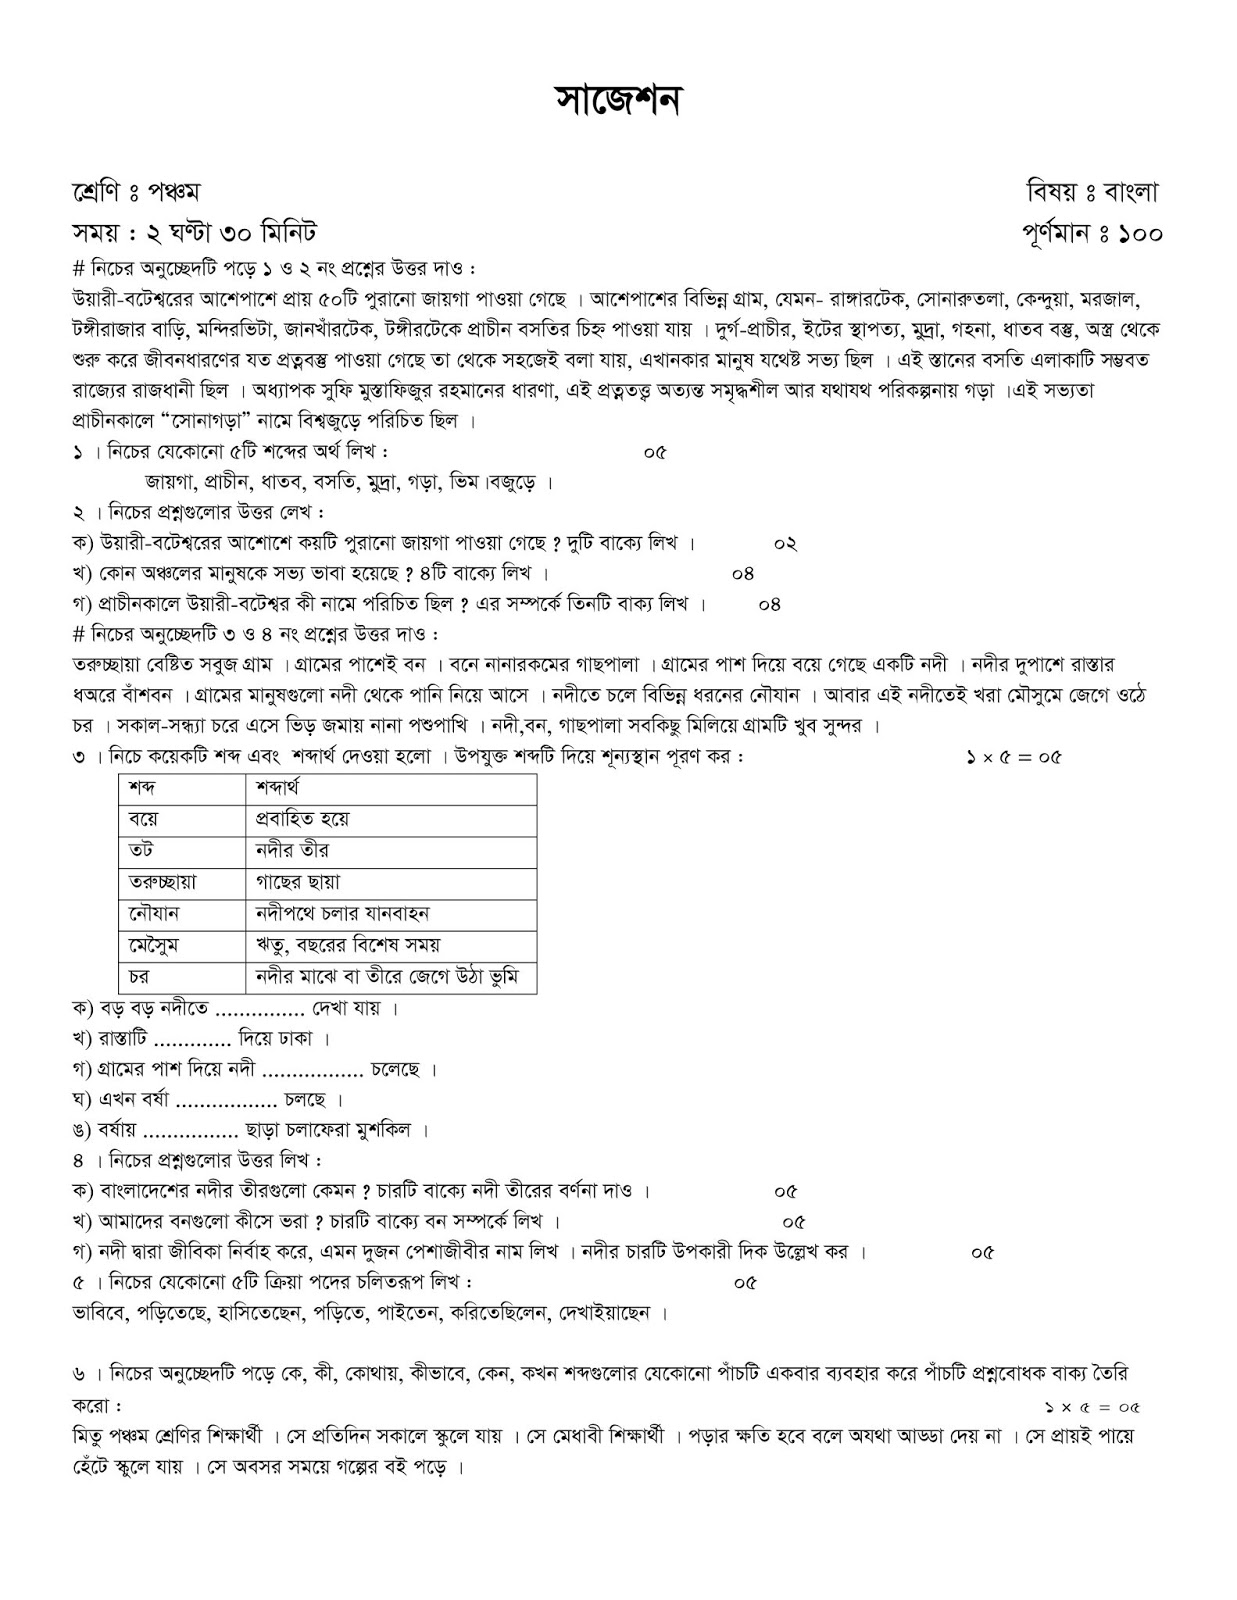 PSC Exam Suggestion Question Paper With Model Question Download